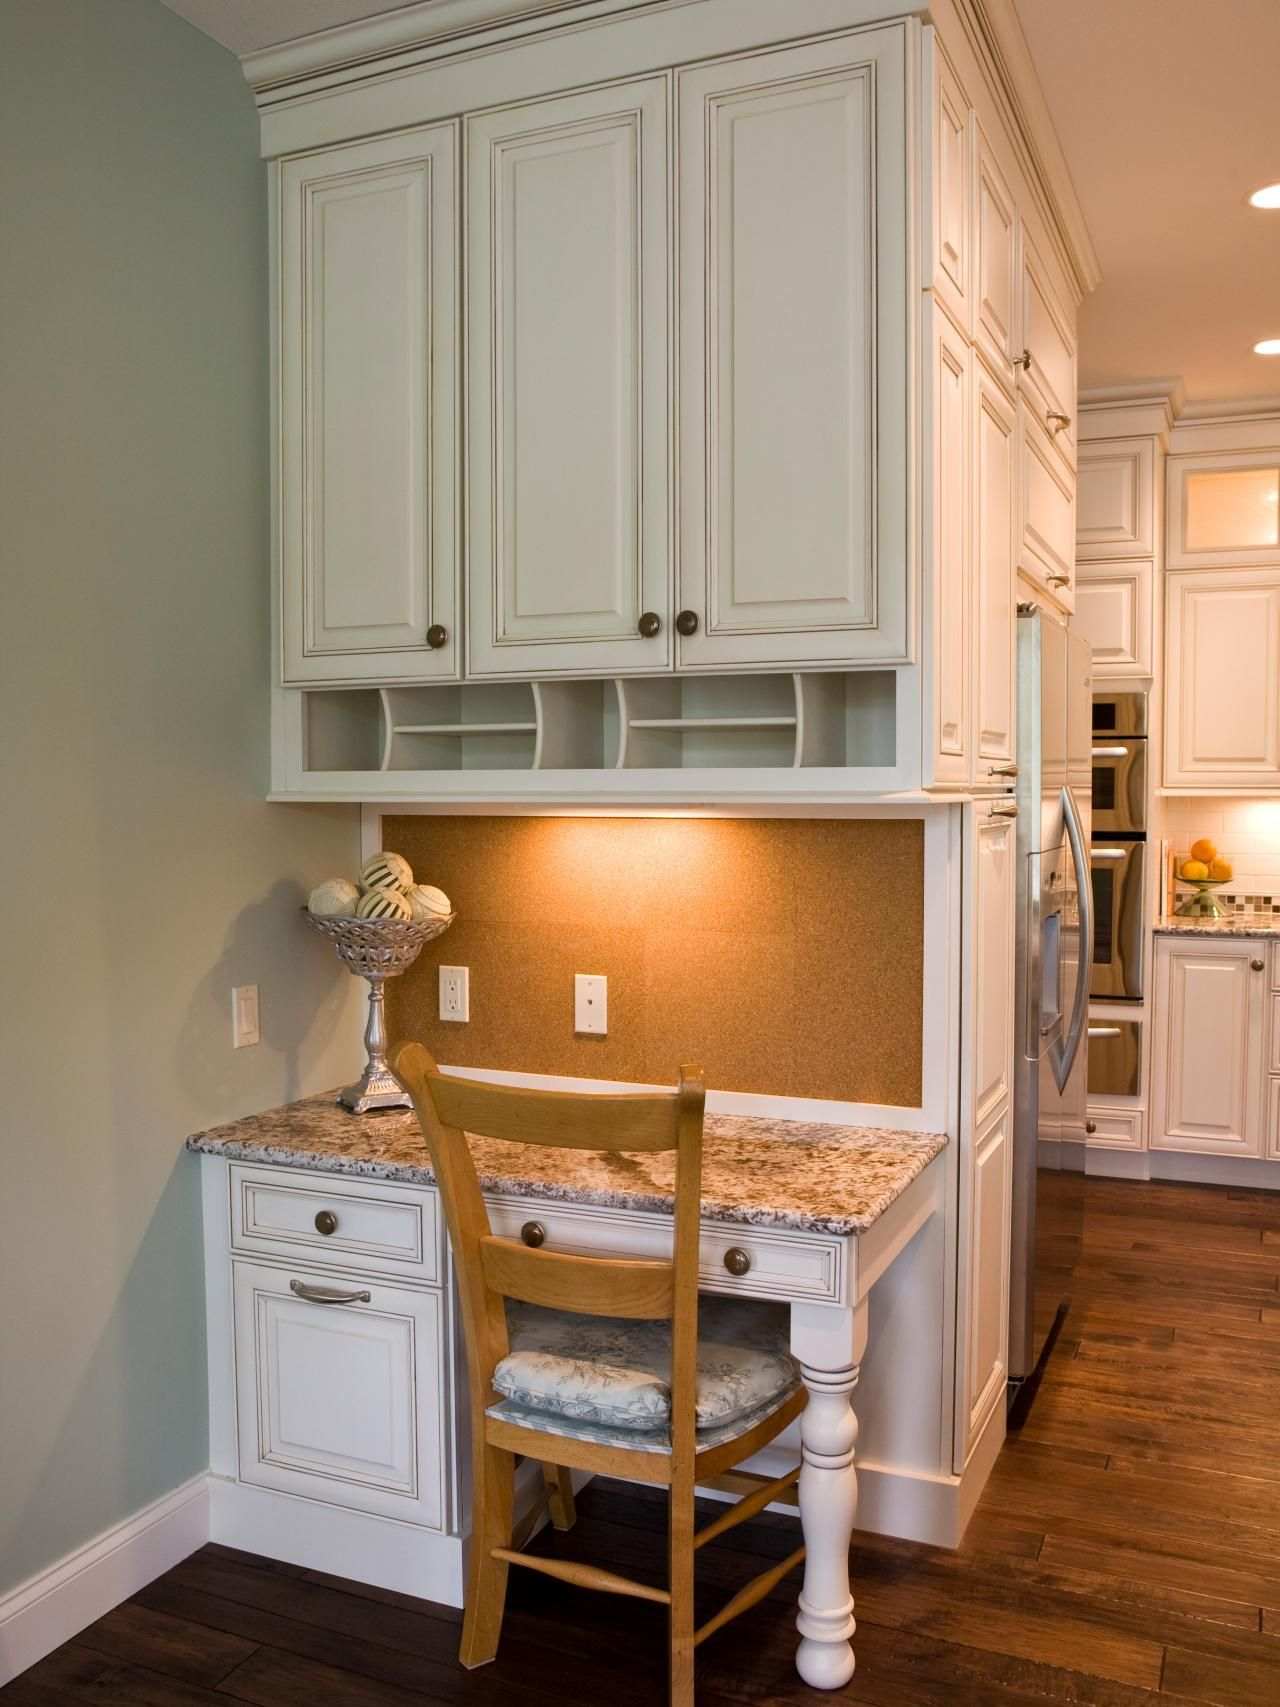 This Custom Designed Kitchen Desk Area Features Plenty Of Storage Granite Countertops And A Corkboard Backsplash